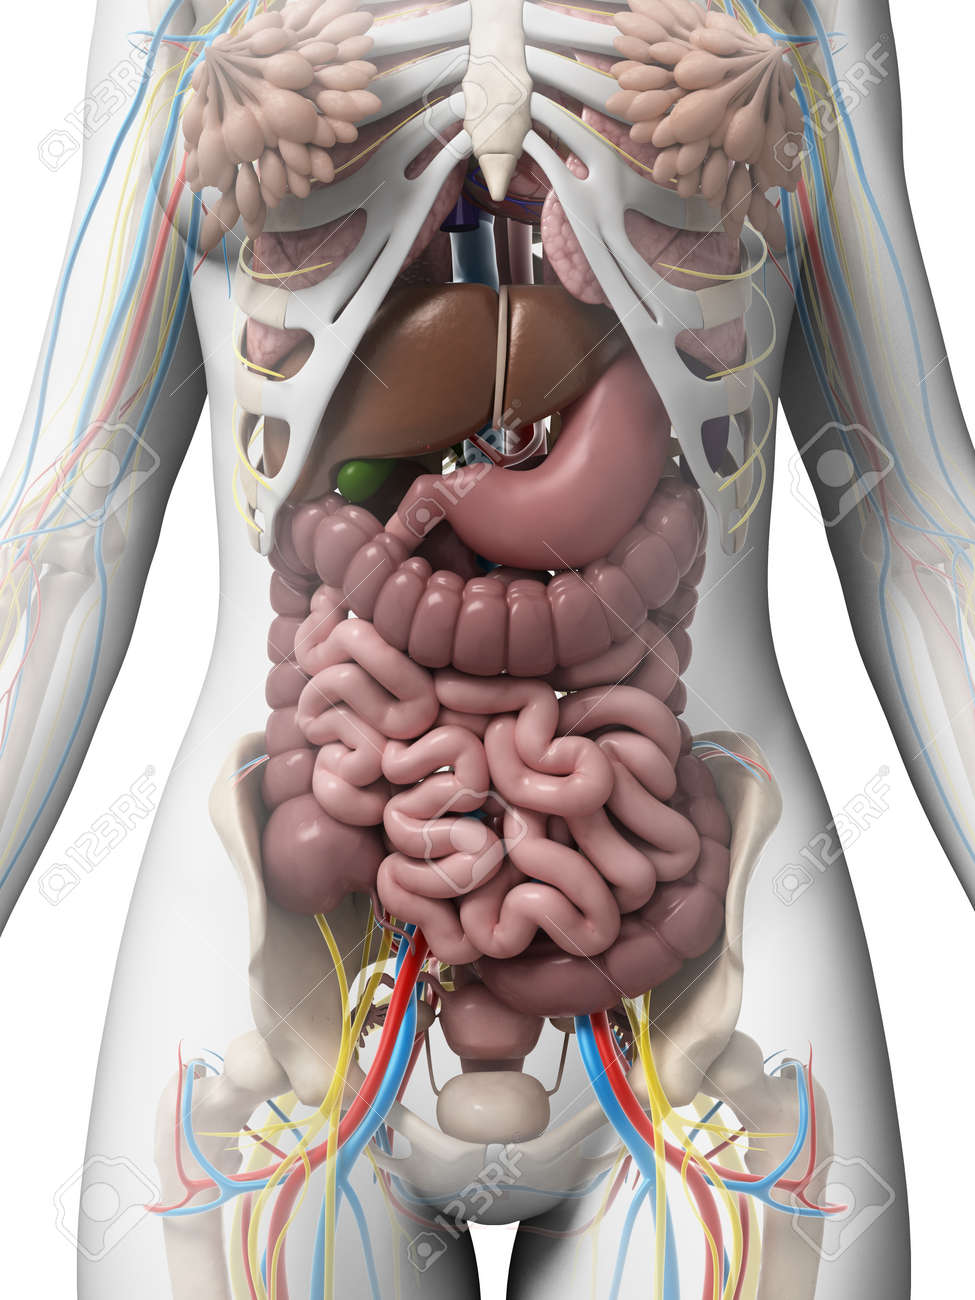 3d Rendered Illustration Of The Female Anatomy Stock Photo, Picture ...